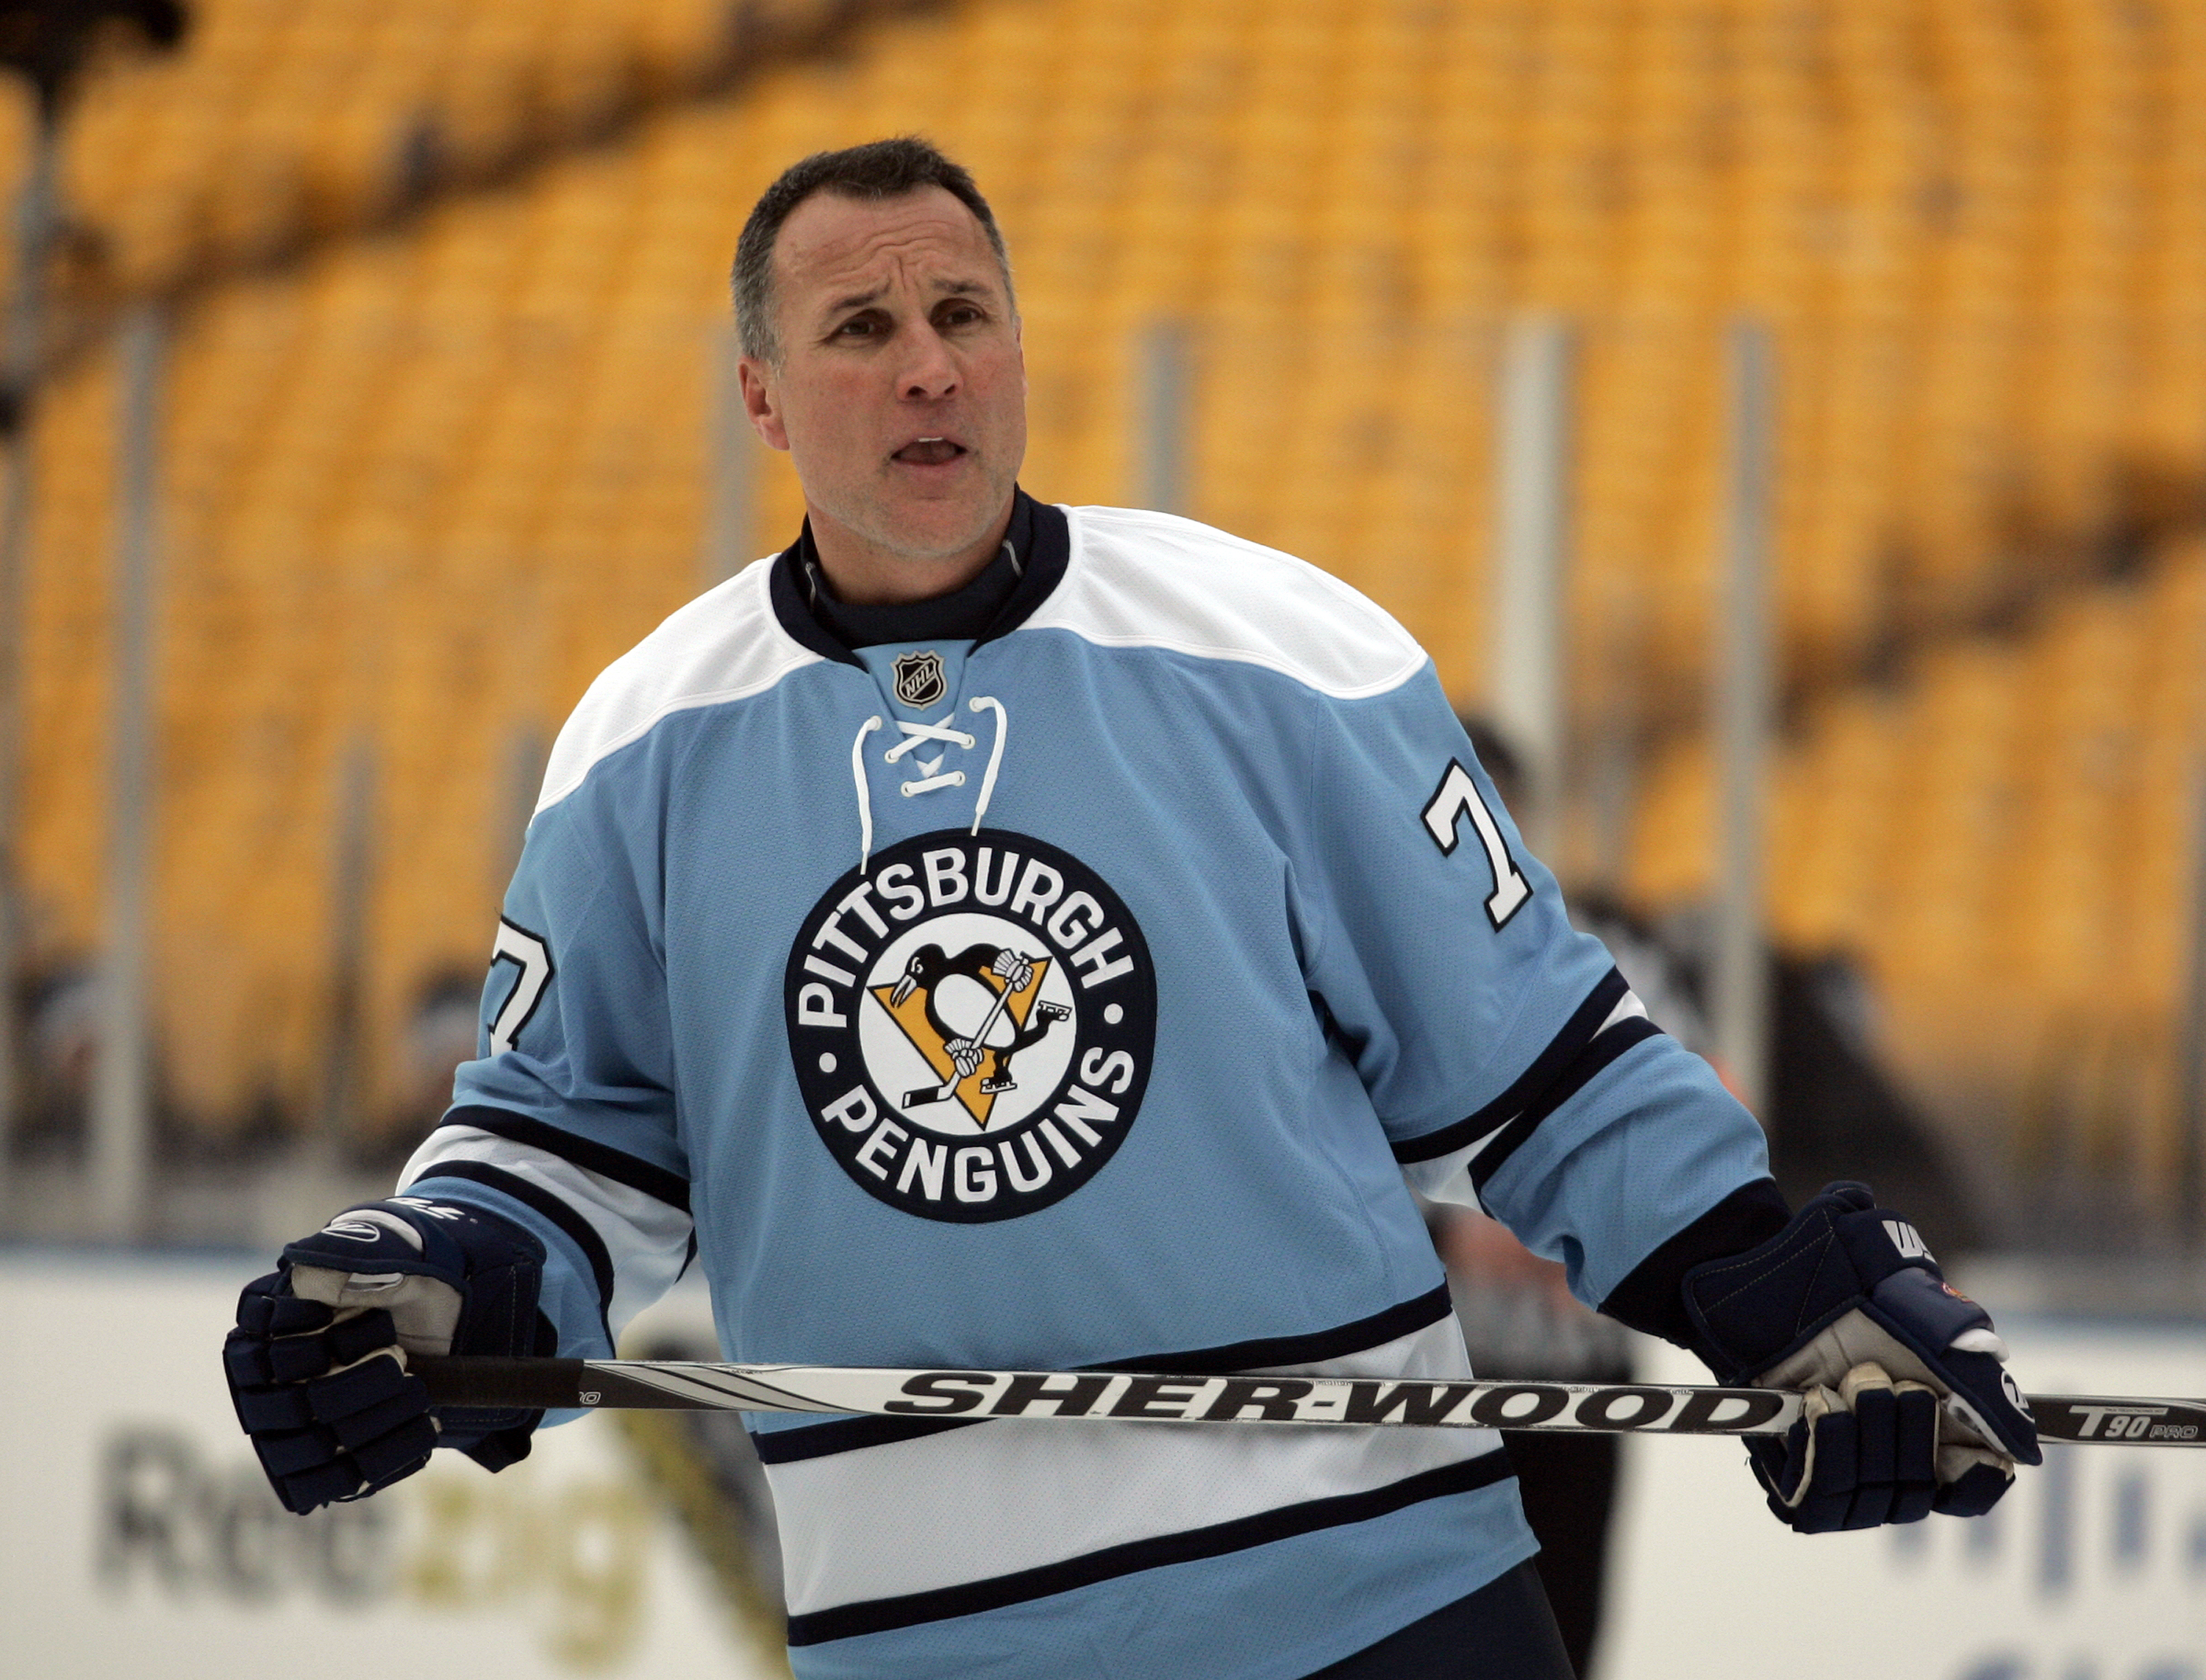 PITTSBURGH, PA - DECEMBER 31:  Paul Coffey #77 of the Pittsburgh Penguins skates against the Washington Capitals during the 2011 NHL Winter Classic Alumni Game on December 31, 2010 at Heinz Field in Pittsburgh, Pennsylvania.  (Photo by Justin K. Aller/Get